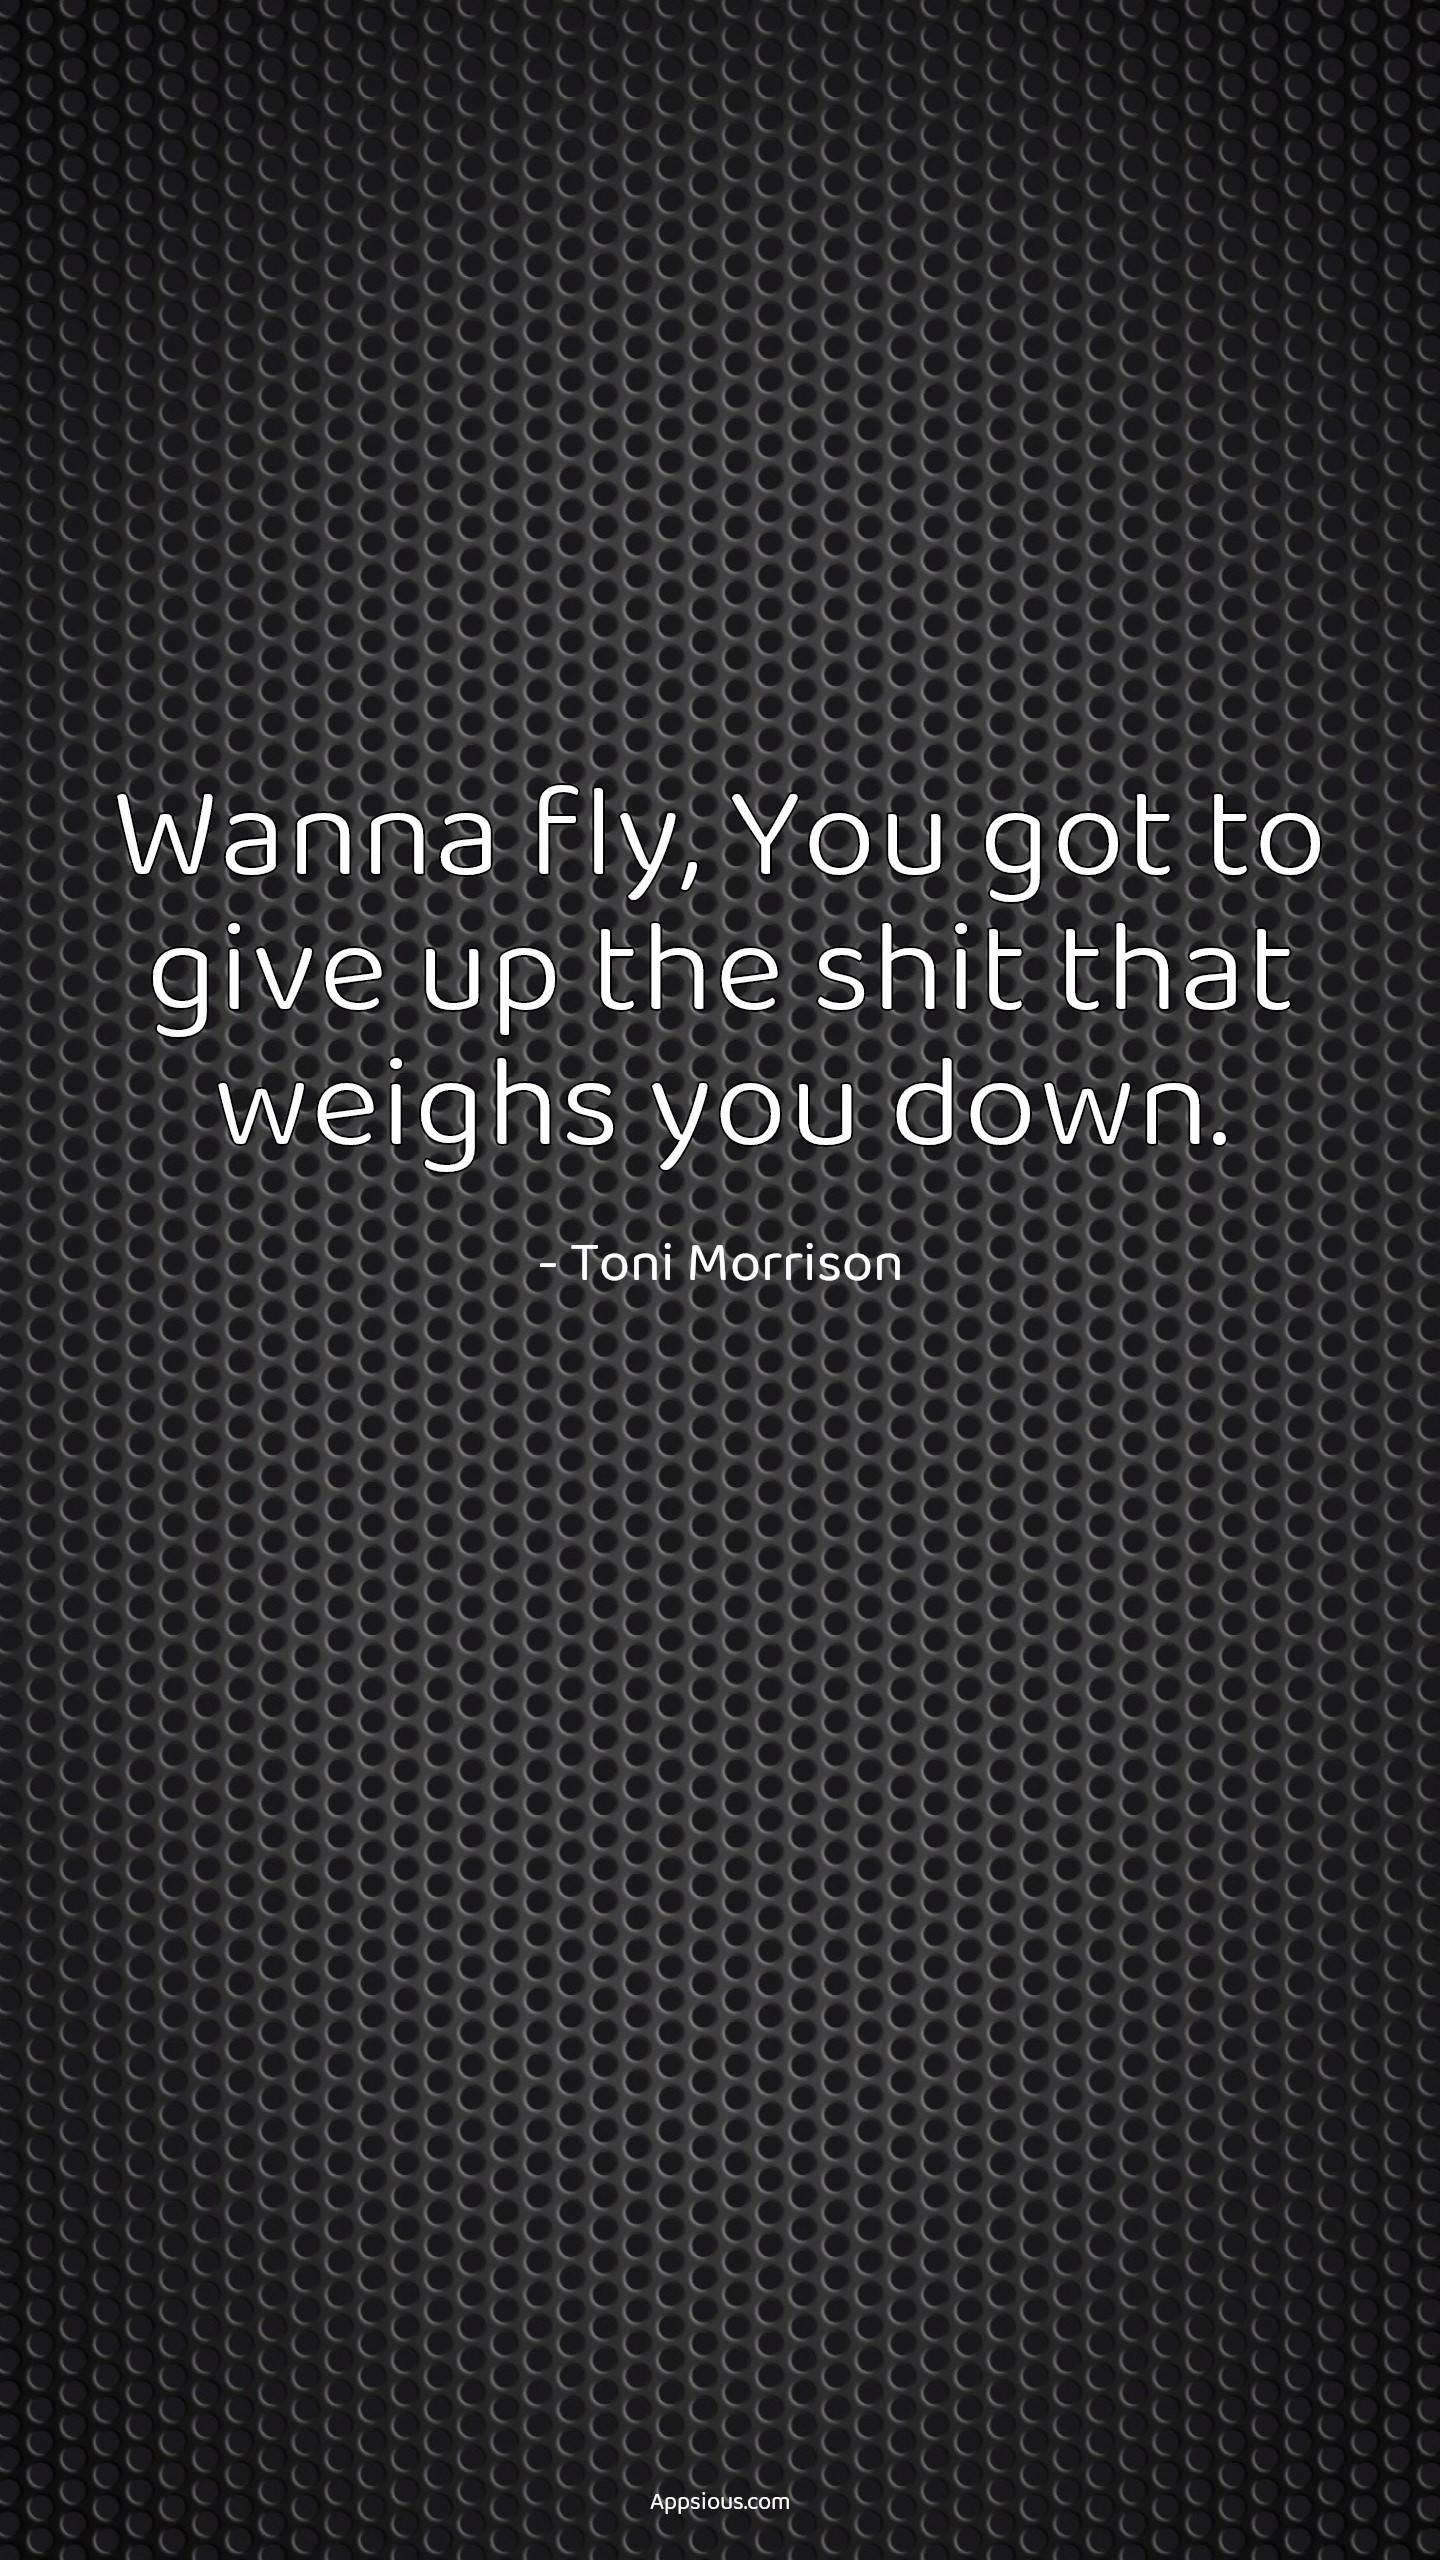 Wanna fly, You got to give up the shit that weighs you down.